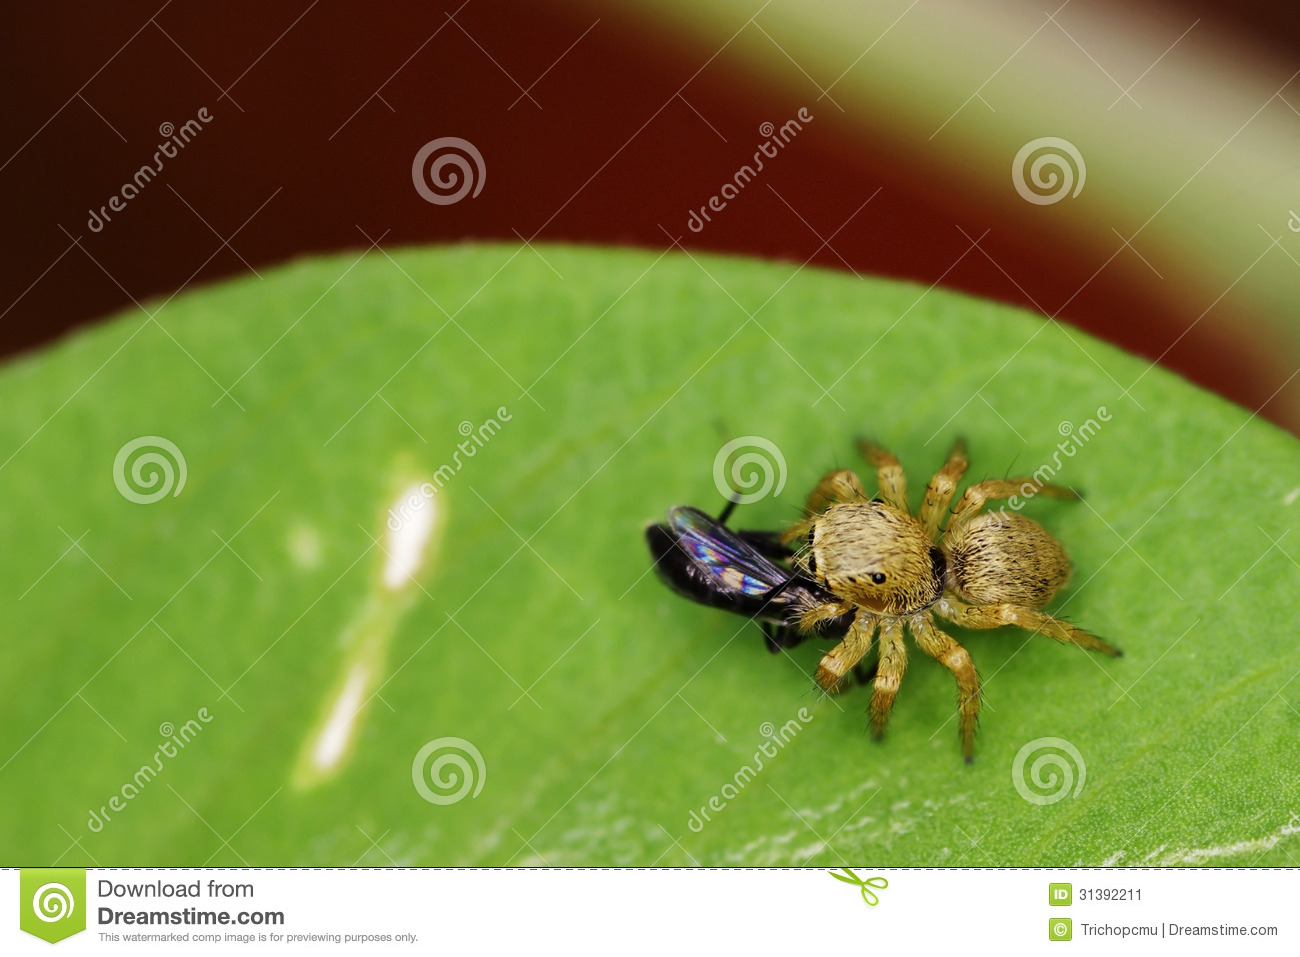 upon a spider catching a flyyyy Upon a spider catching a fly by edward taylor thou sorrow, venom elfe: is this thy play, to spin a web out of thyselfe to catch a fly for why i saw a pettish.